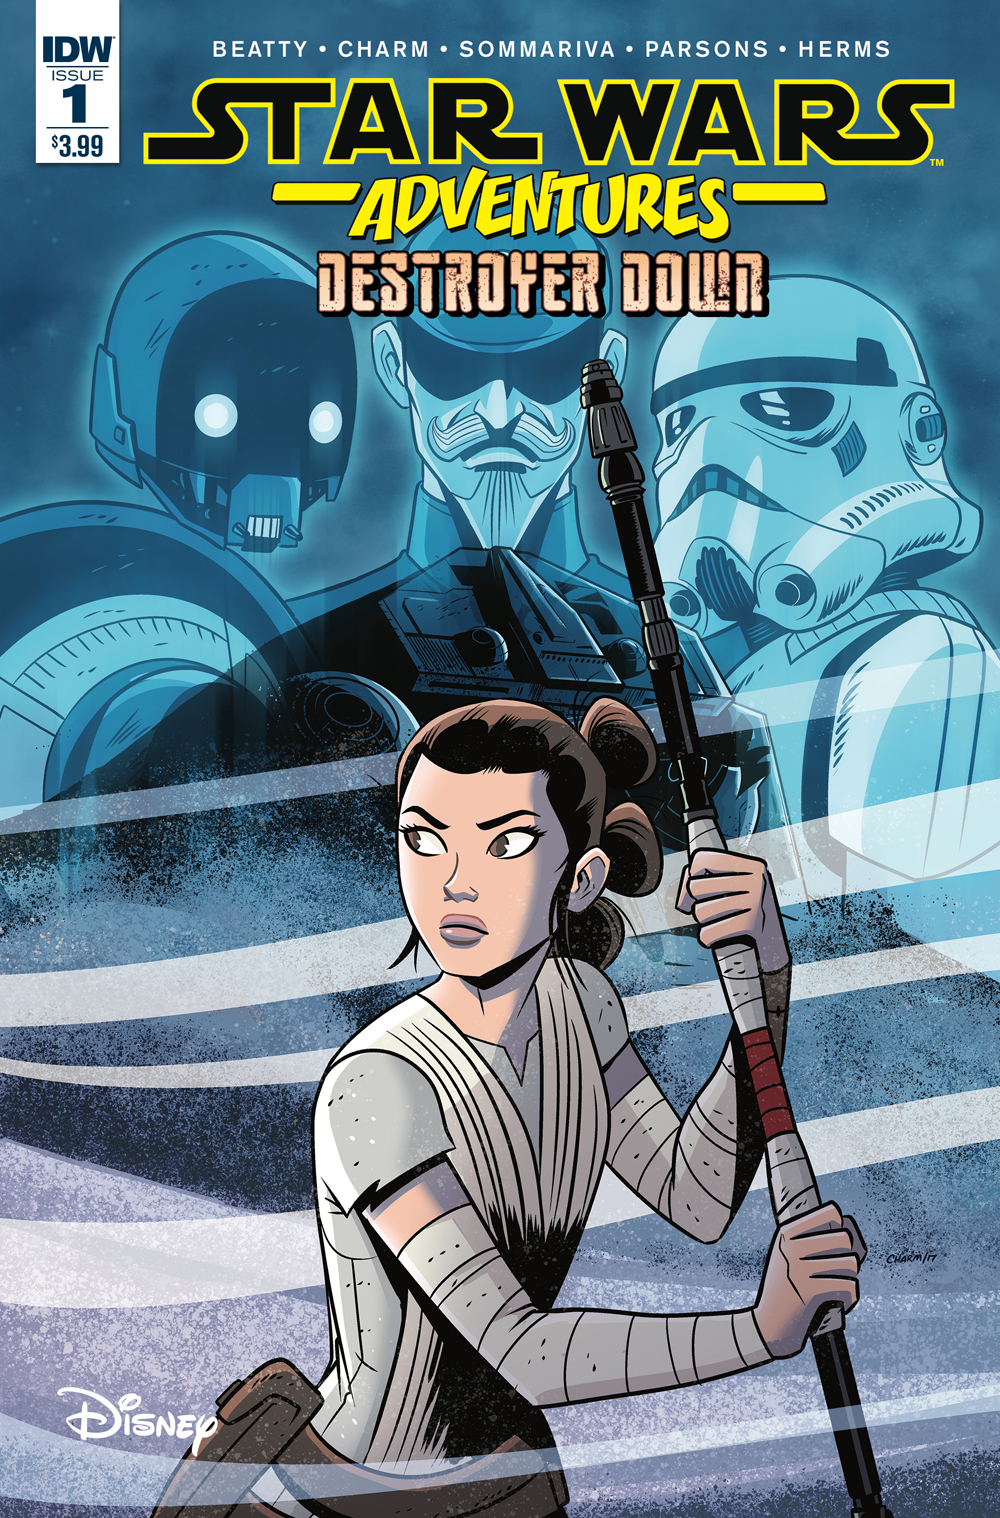 STAR WARS ADVENTURES #1 (OF 3) DESTROYER DOWN